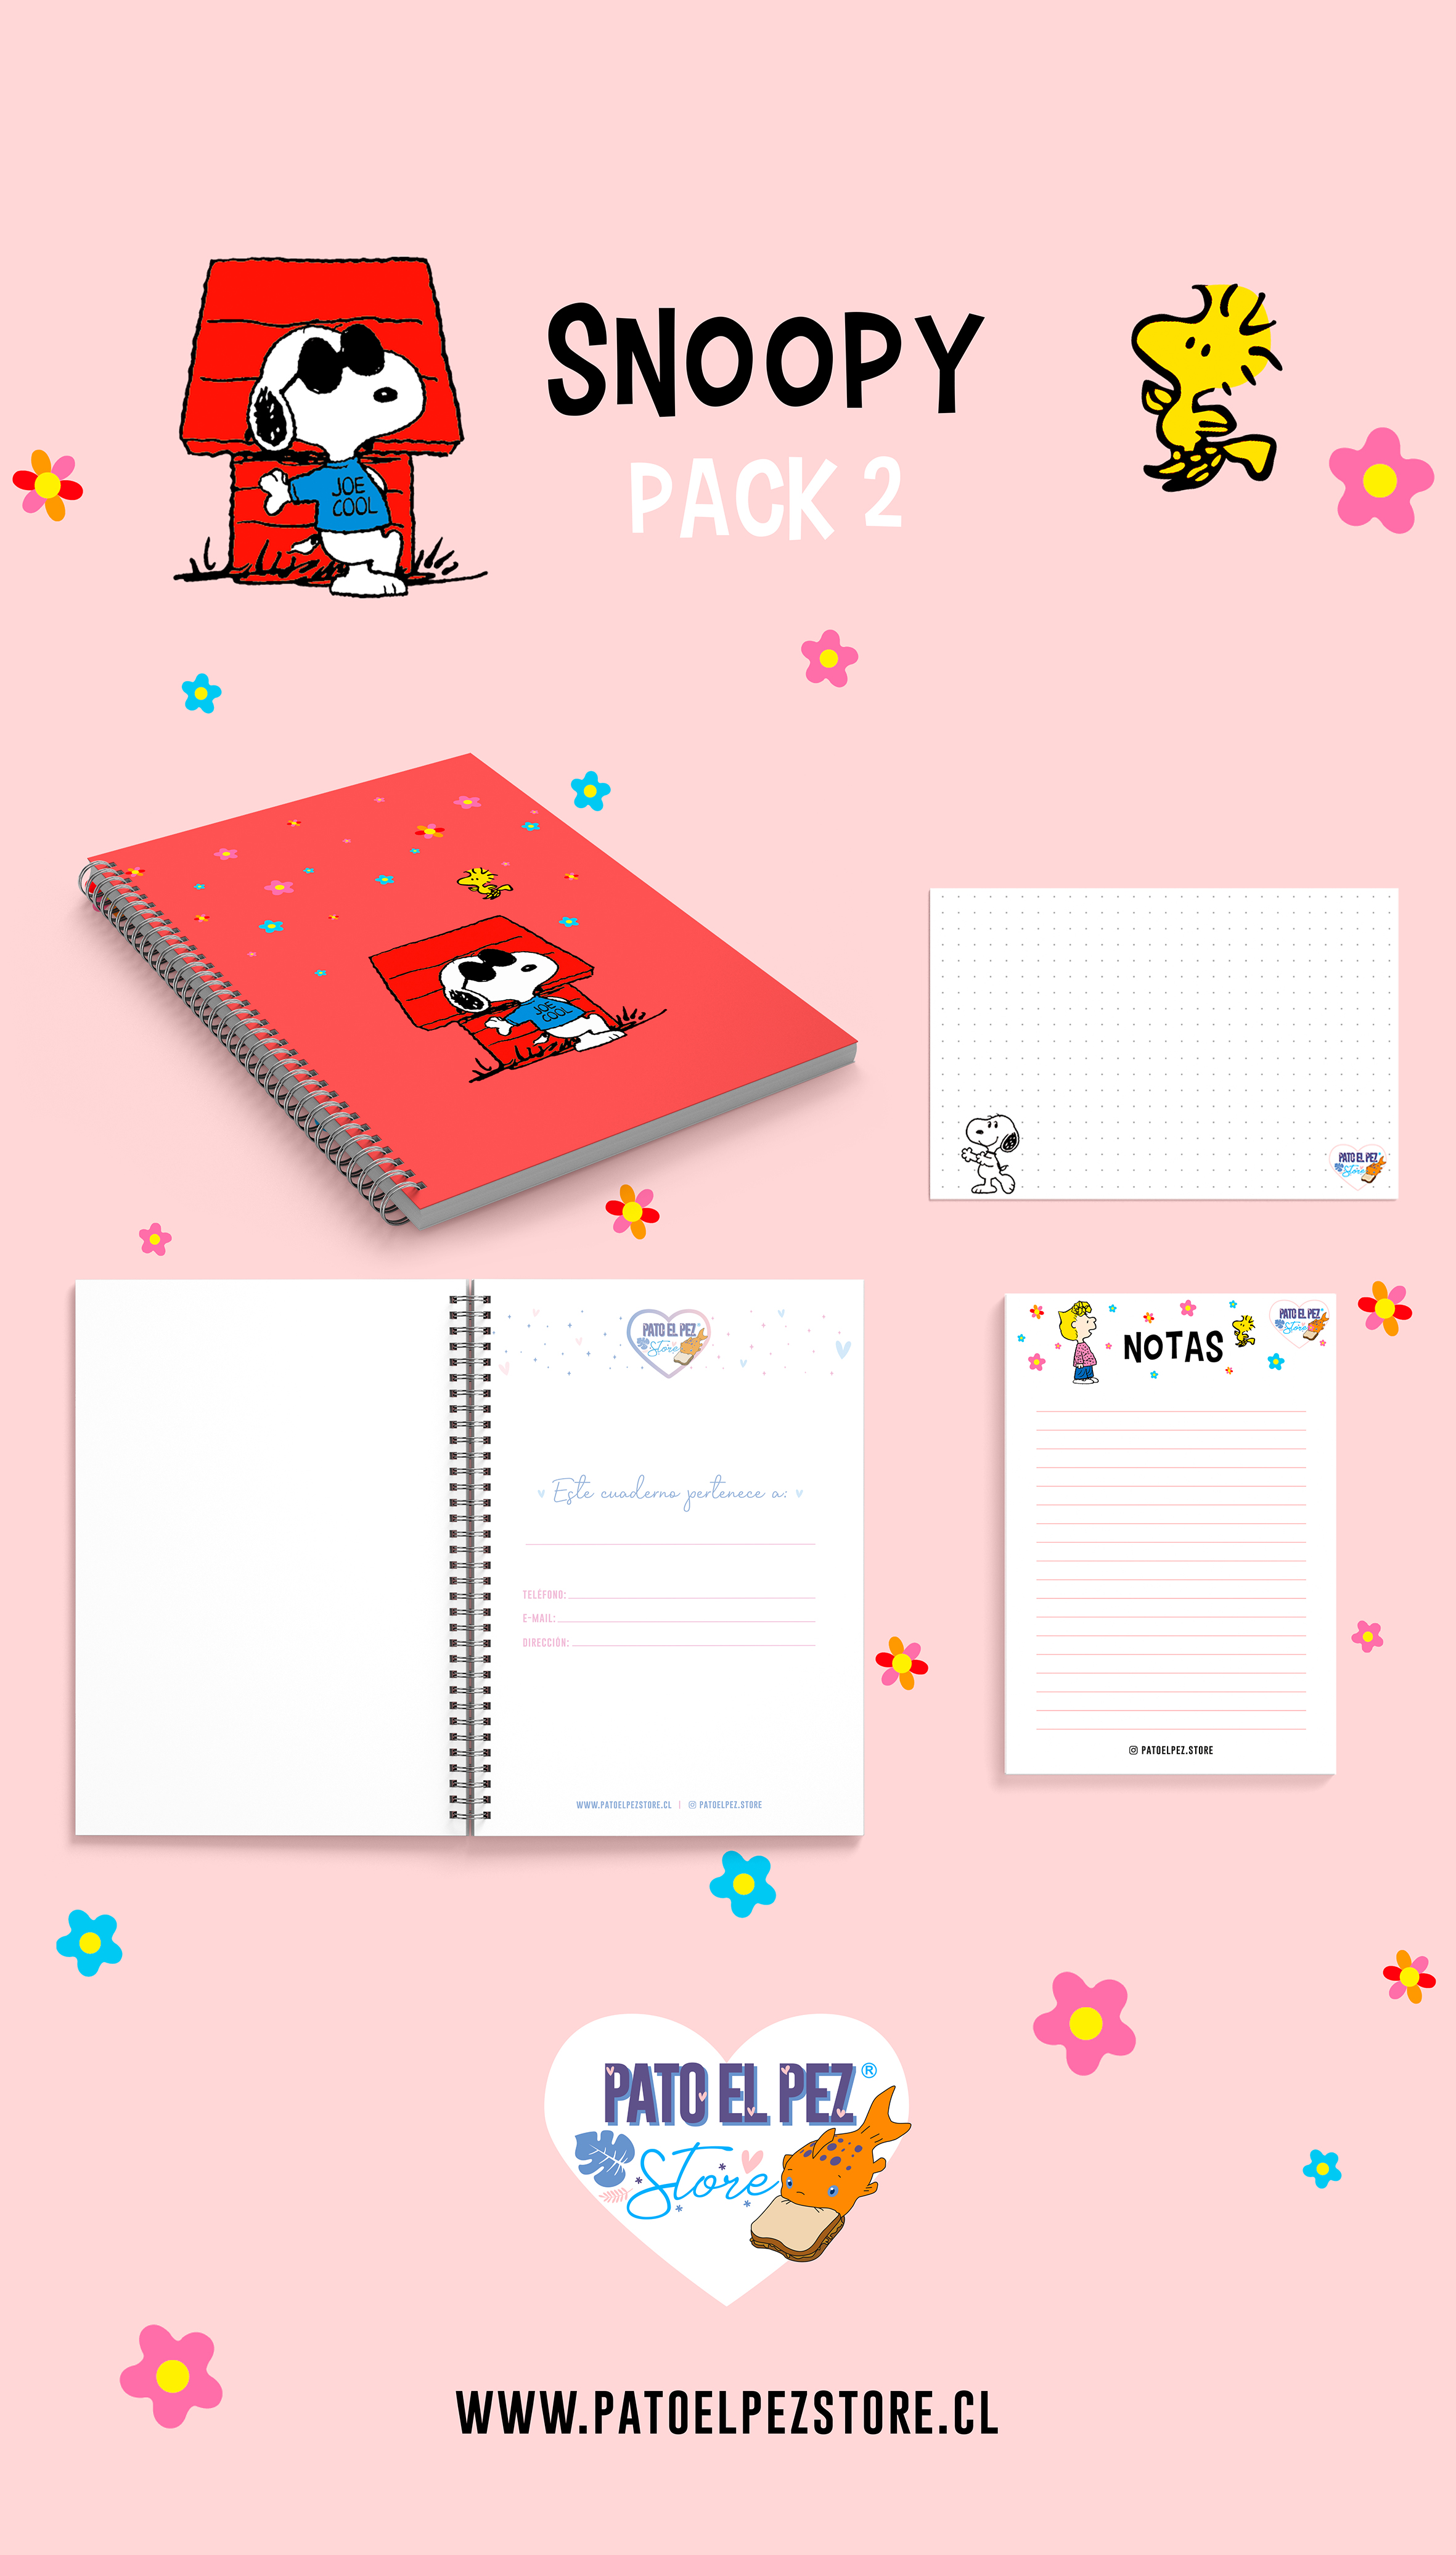 PACK 2 SNOOPY